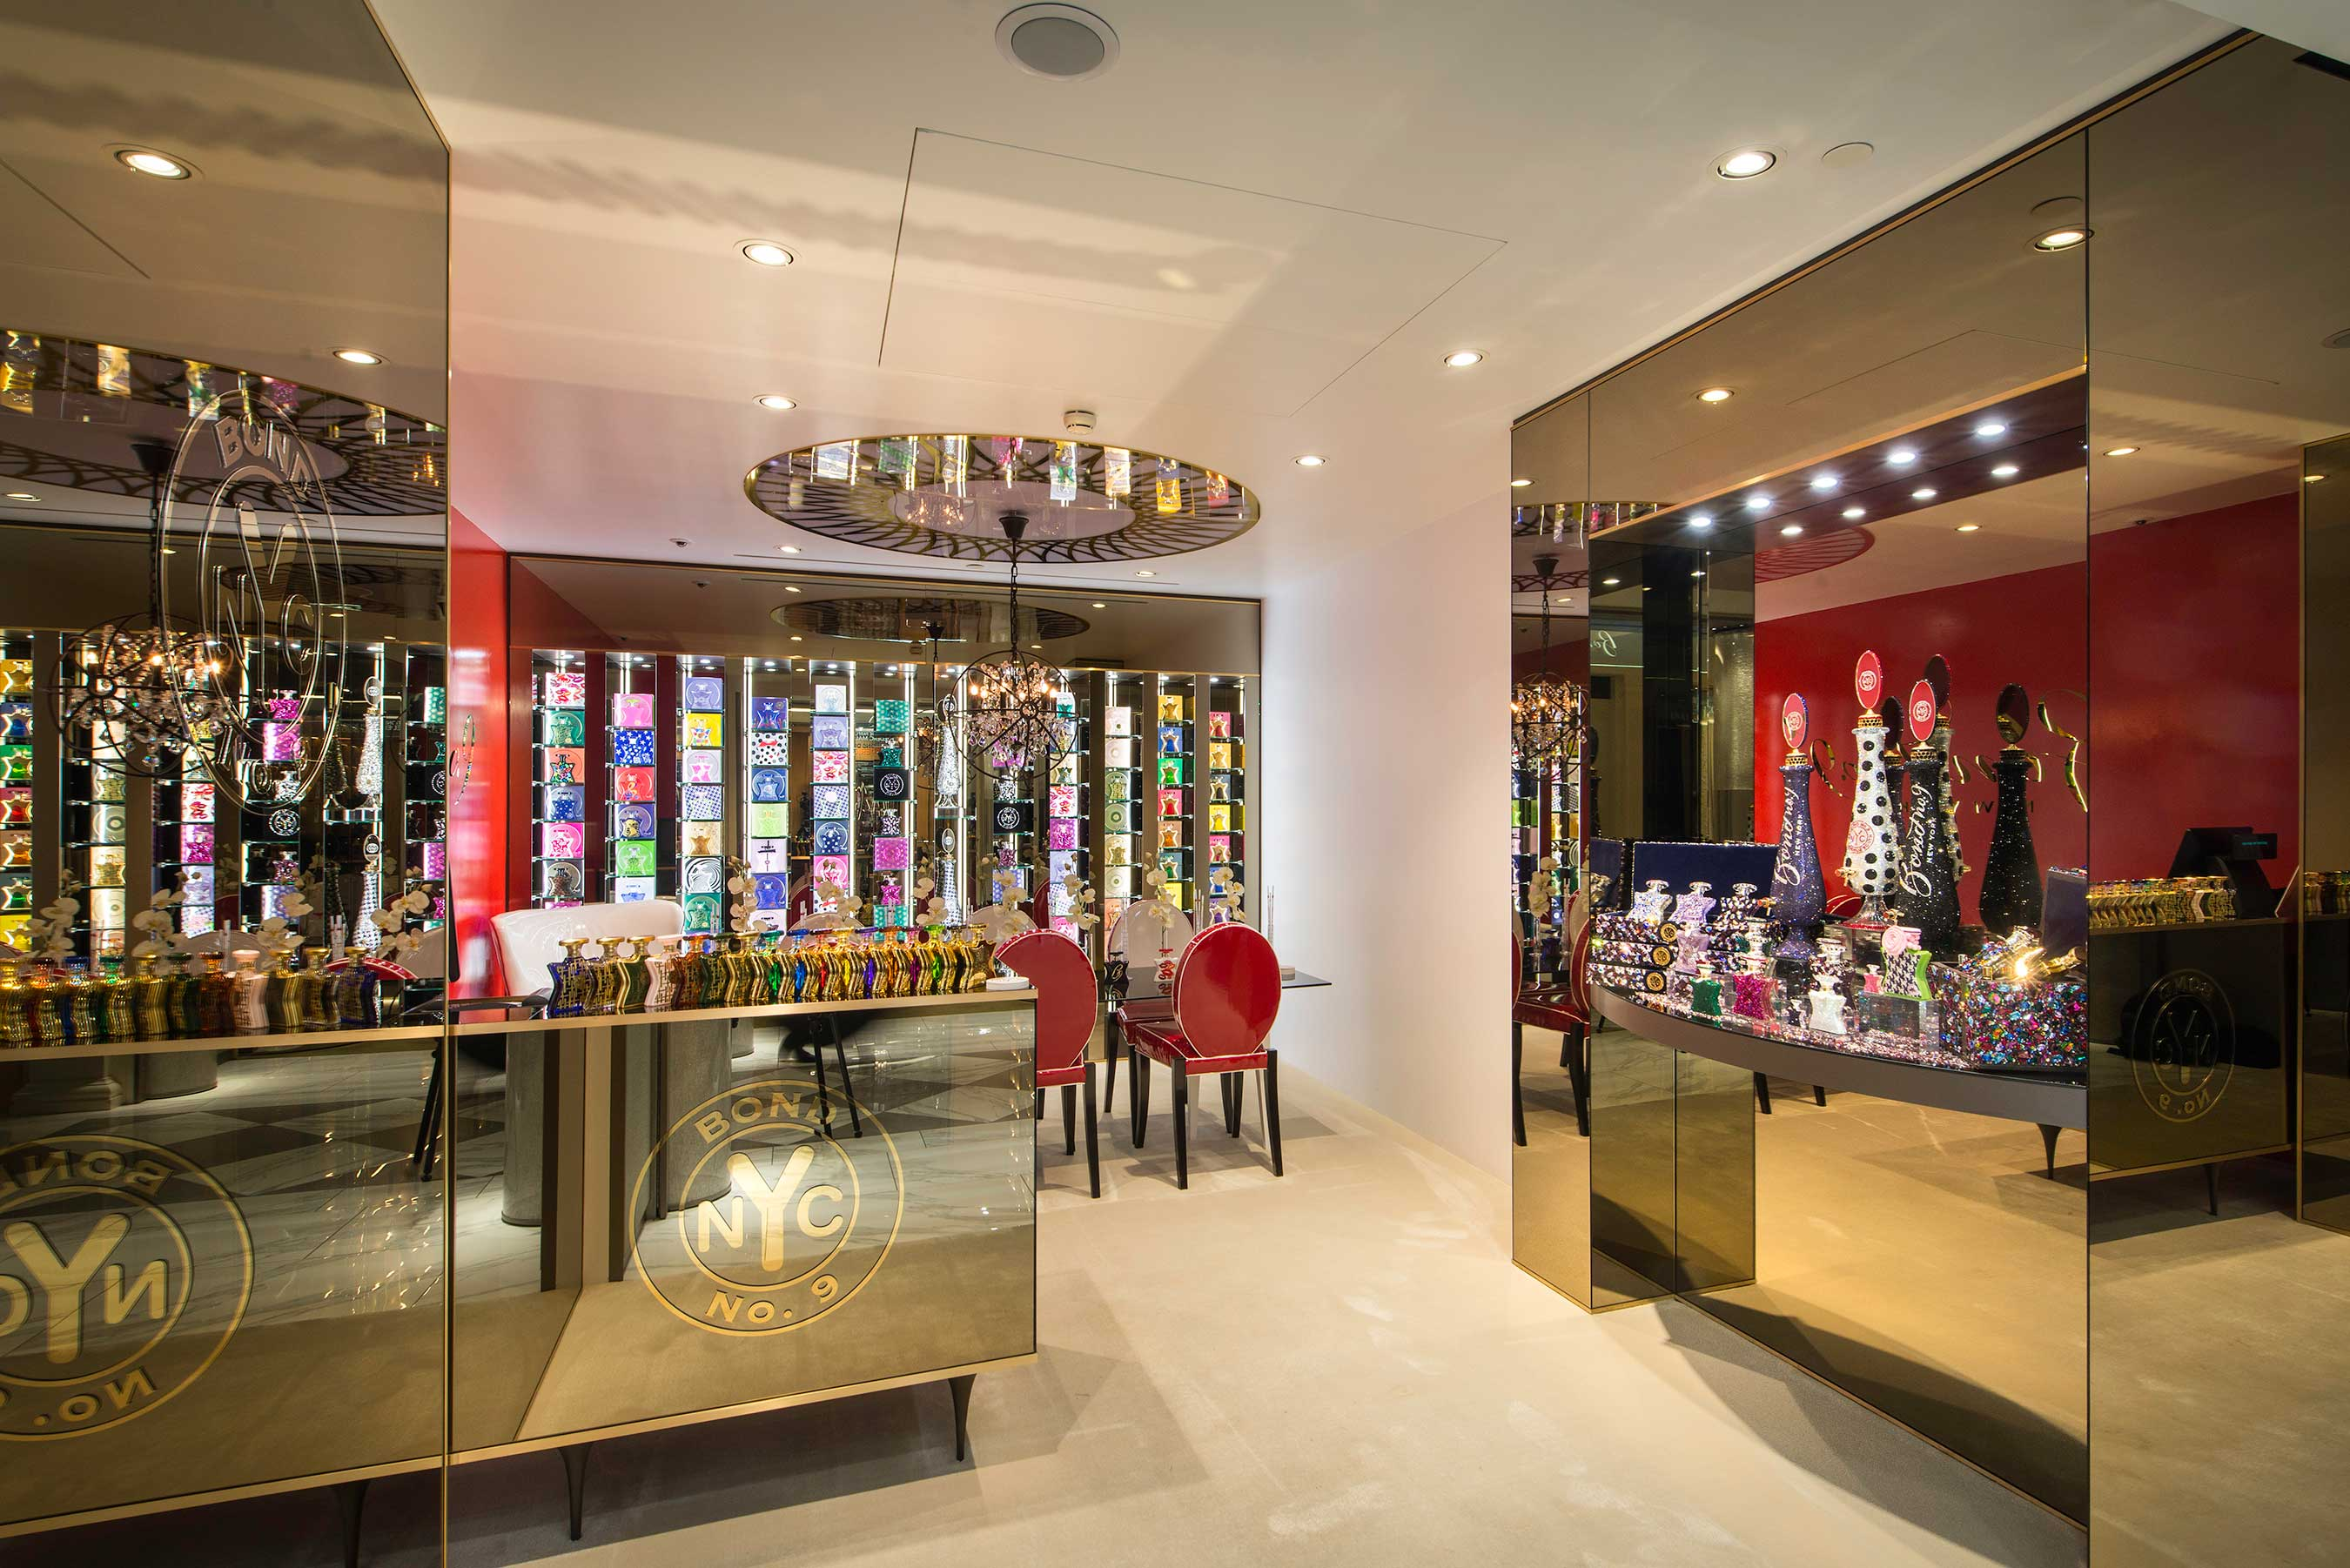 Bond No. 9 is on the rise at Harrods, heading up to the 6th floor Salon de Parfums